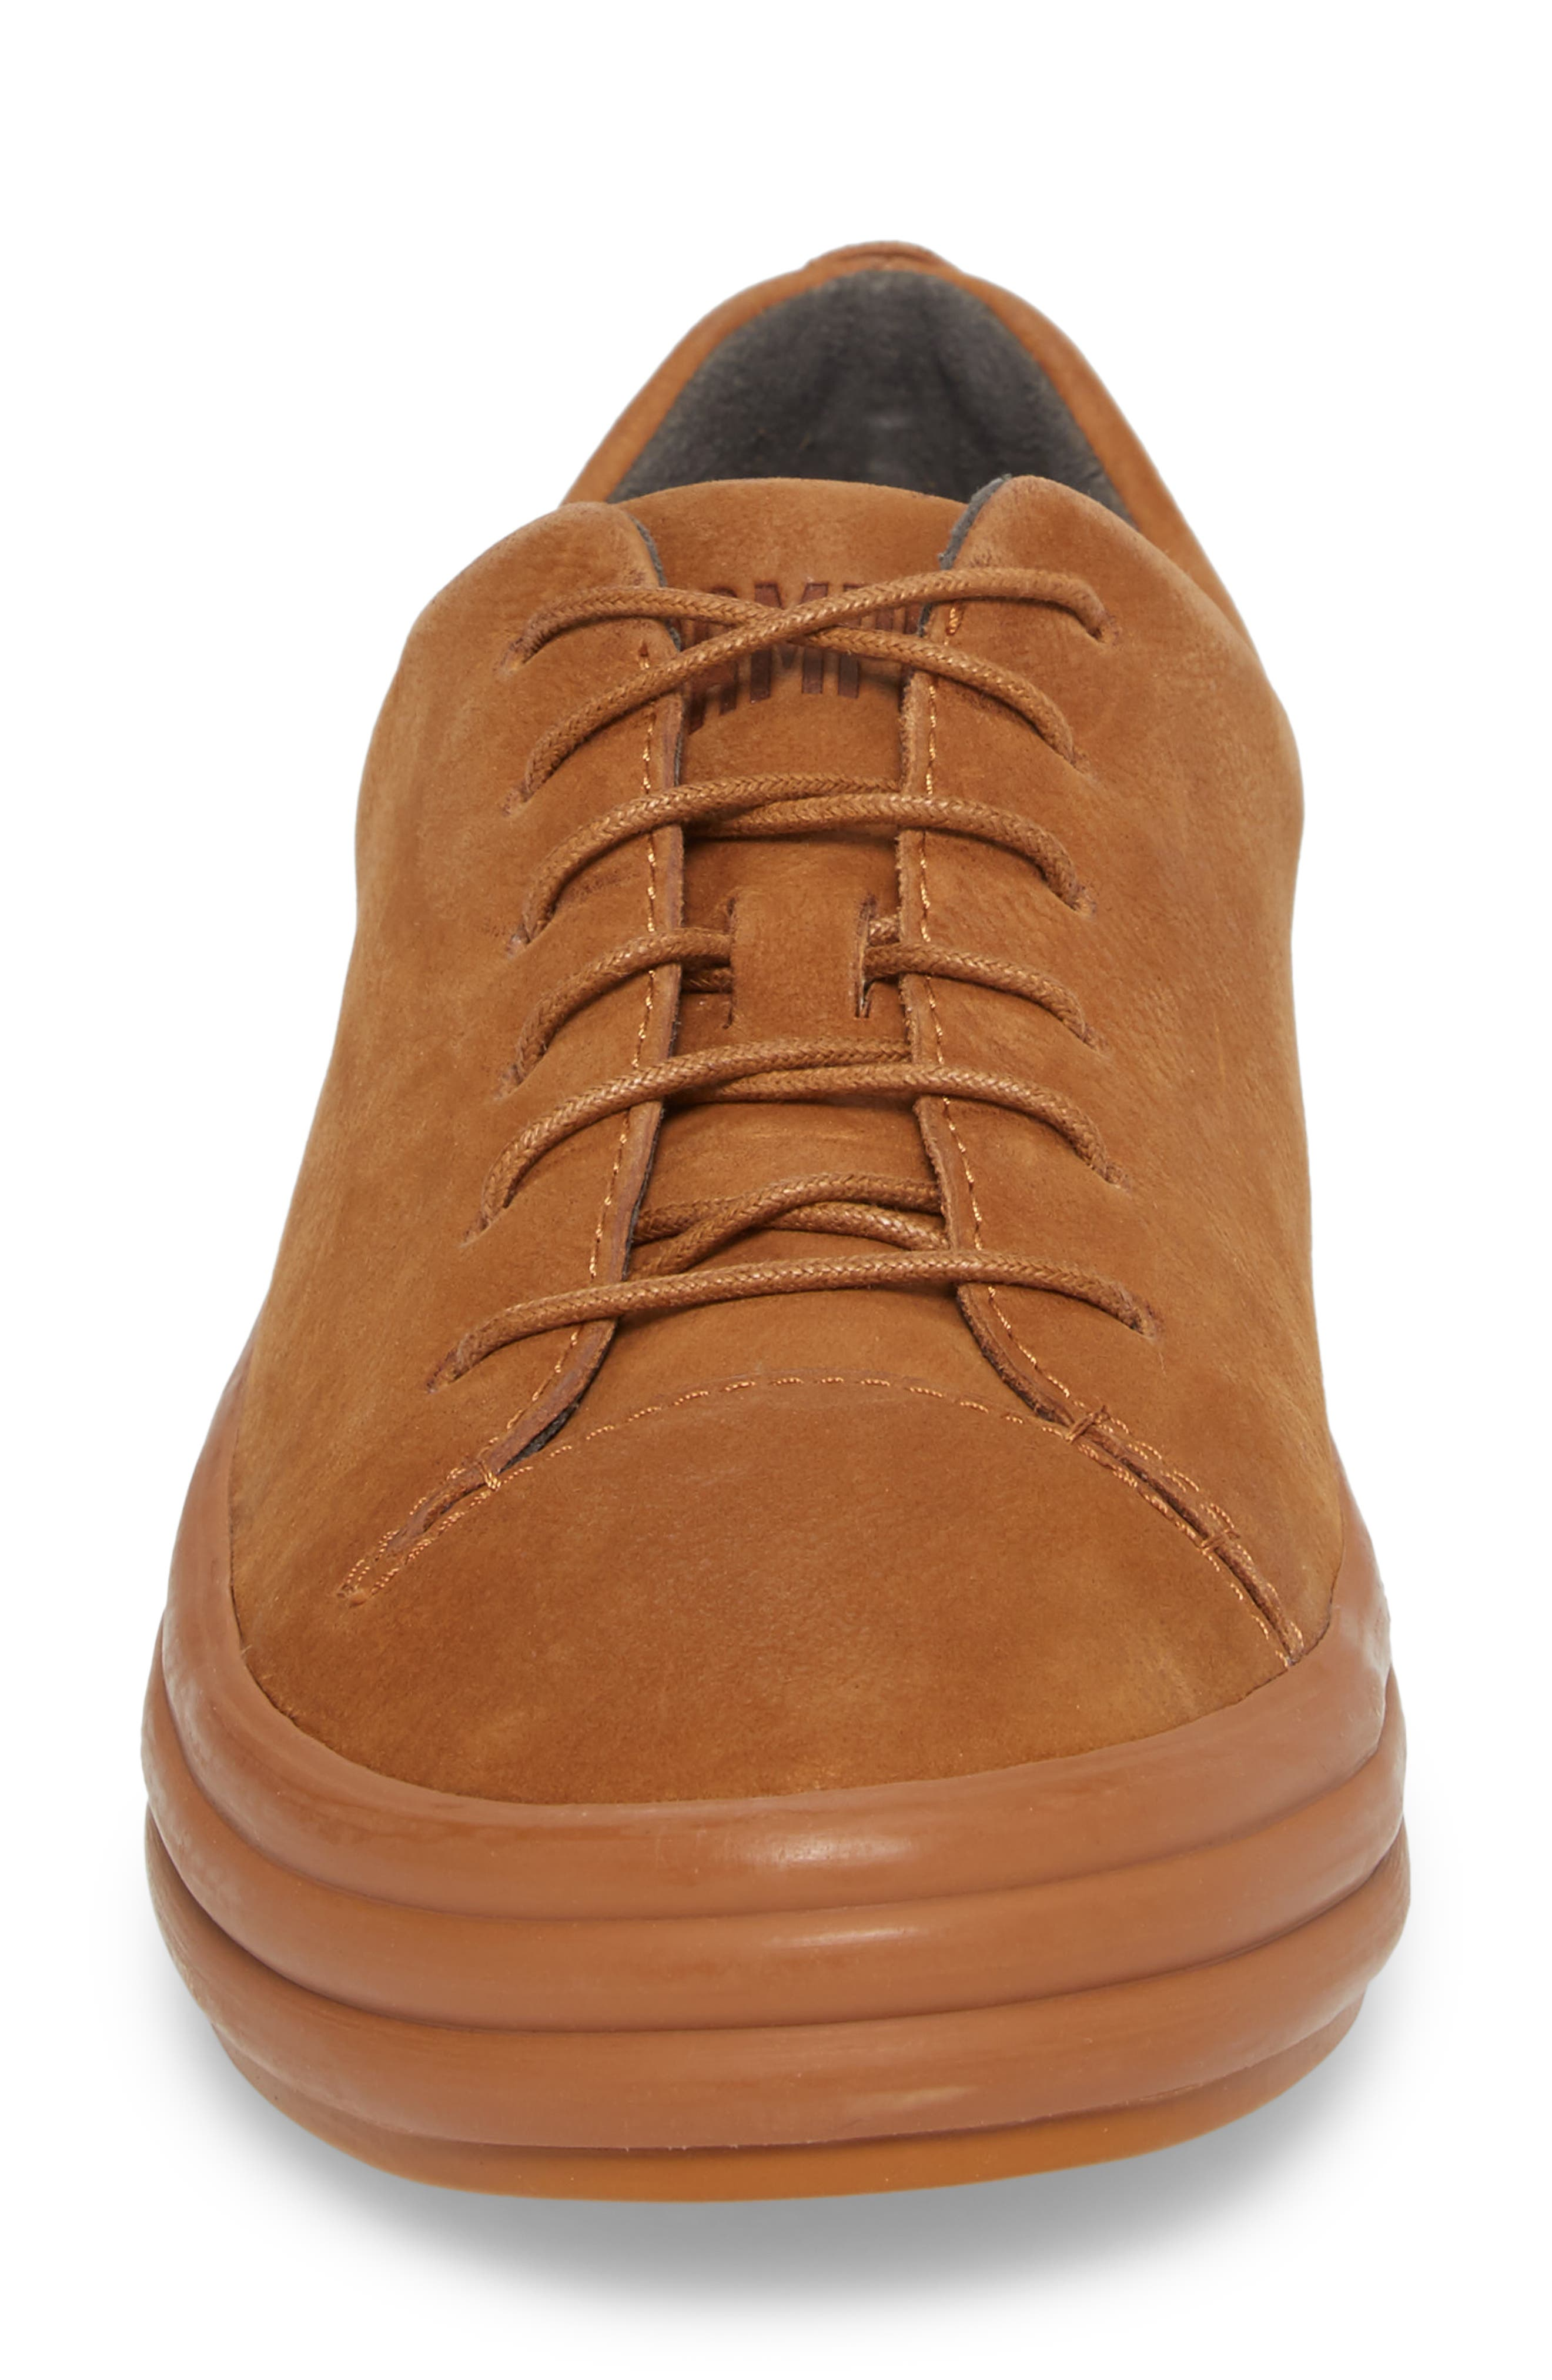 Hoops Sneaker,                             Alternate thumbnail 4, color,                             Rust/ Copper Leather